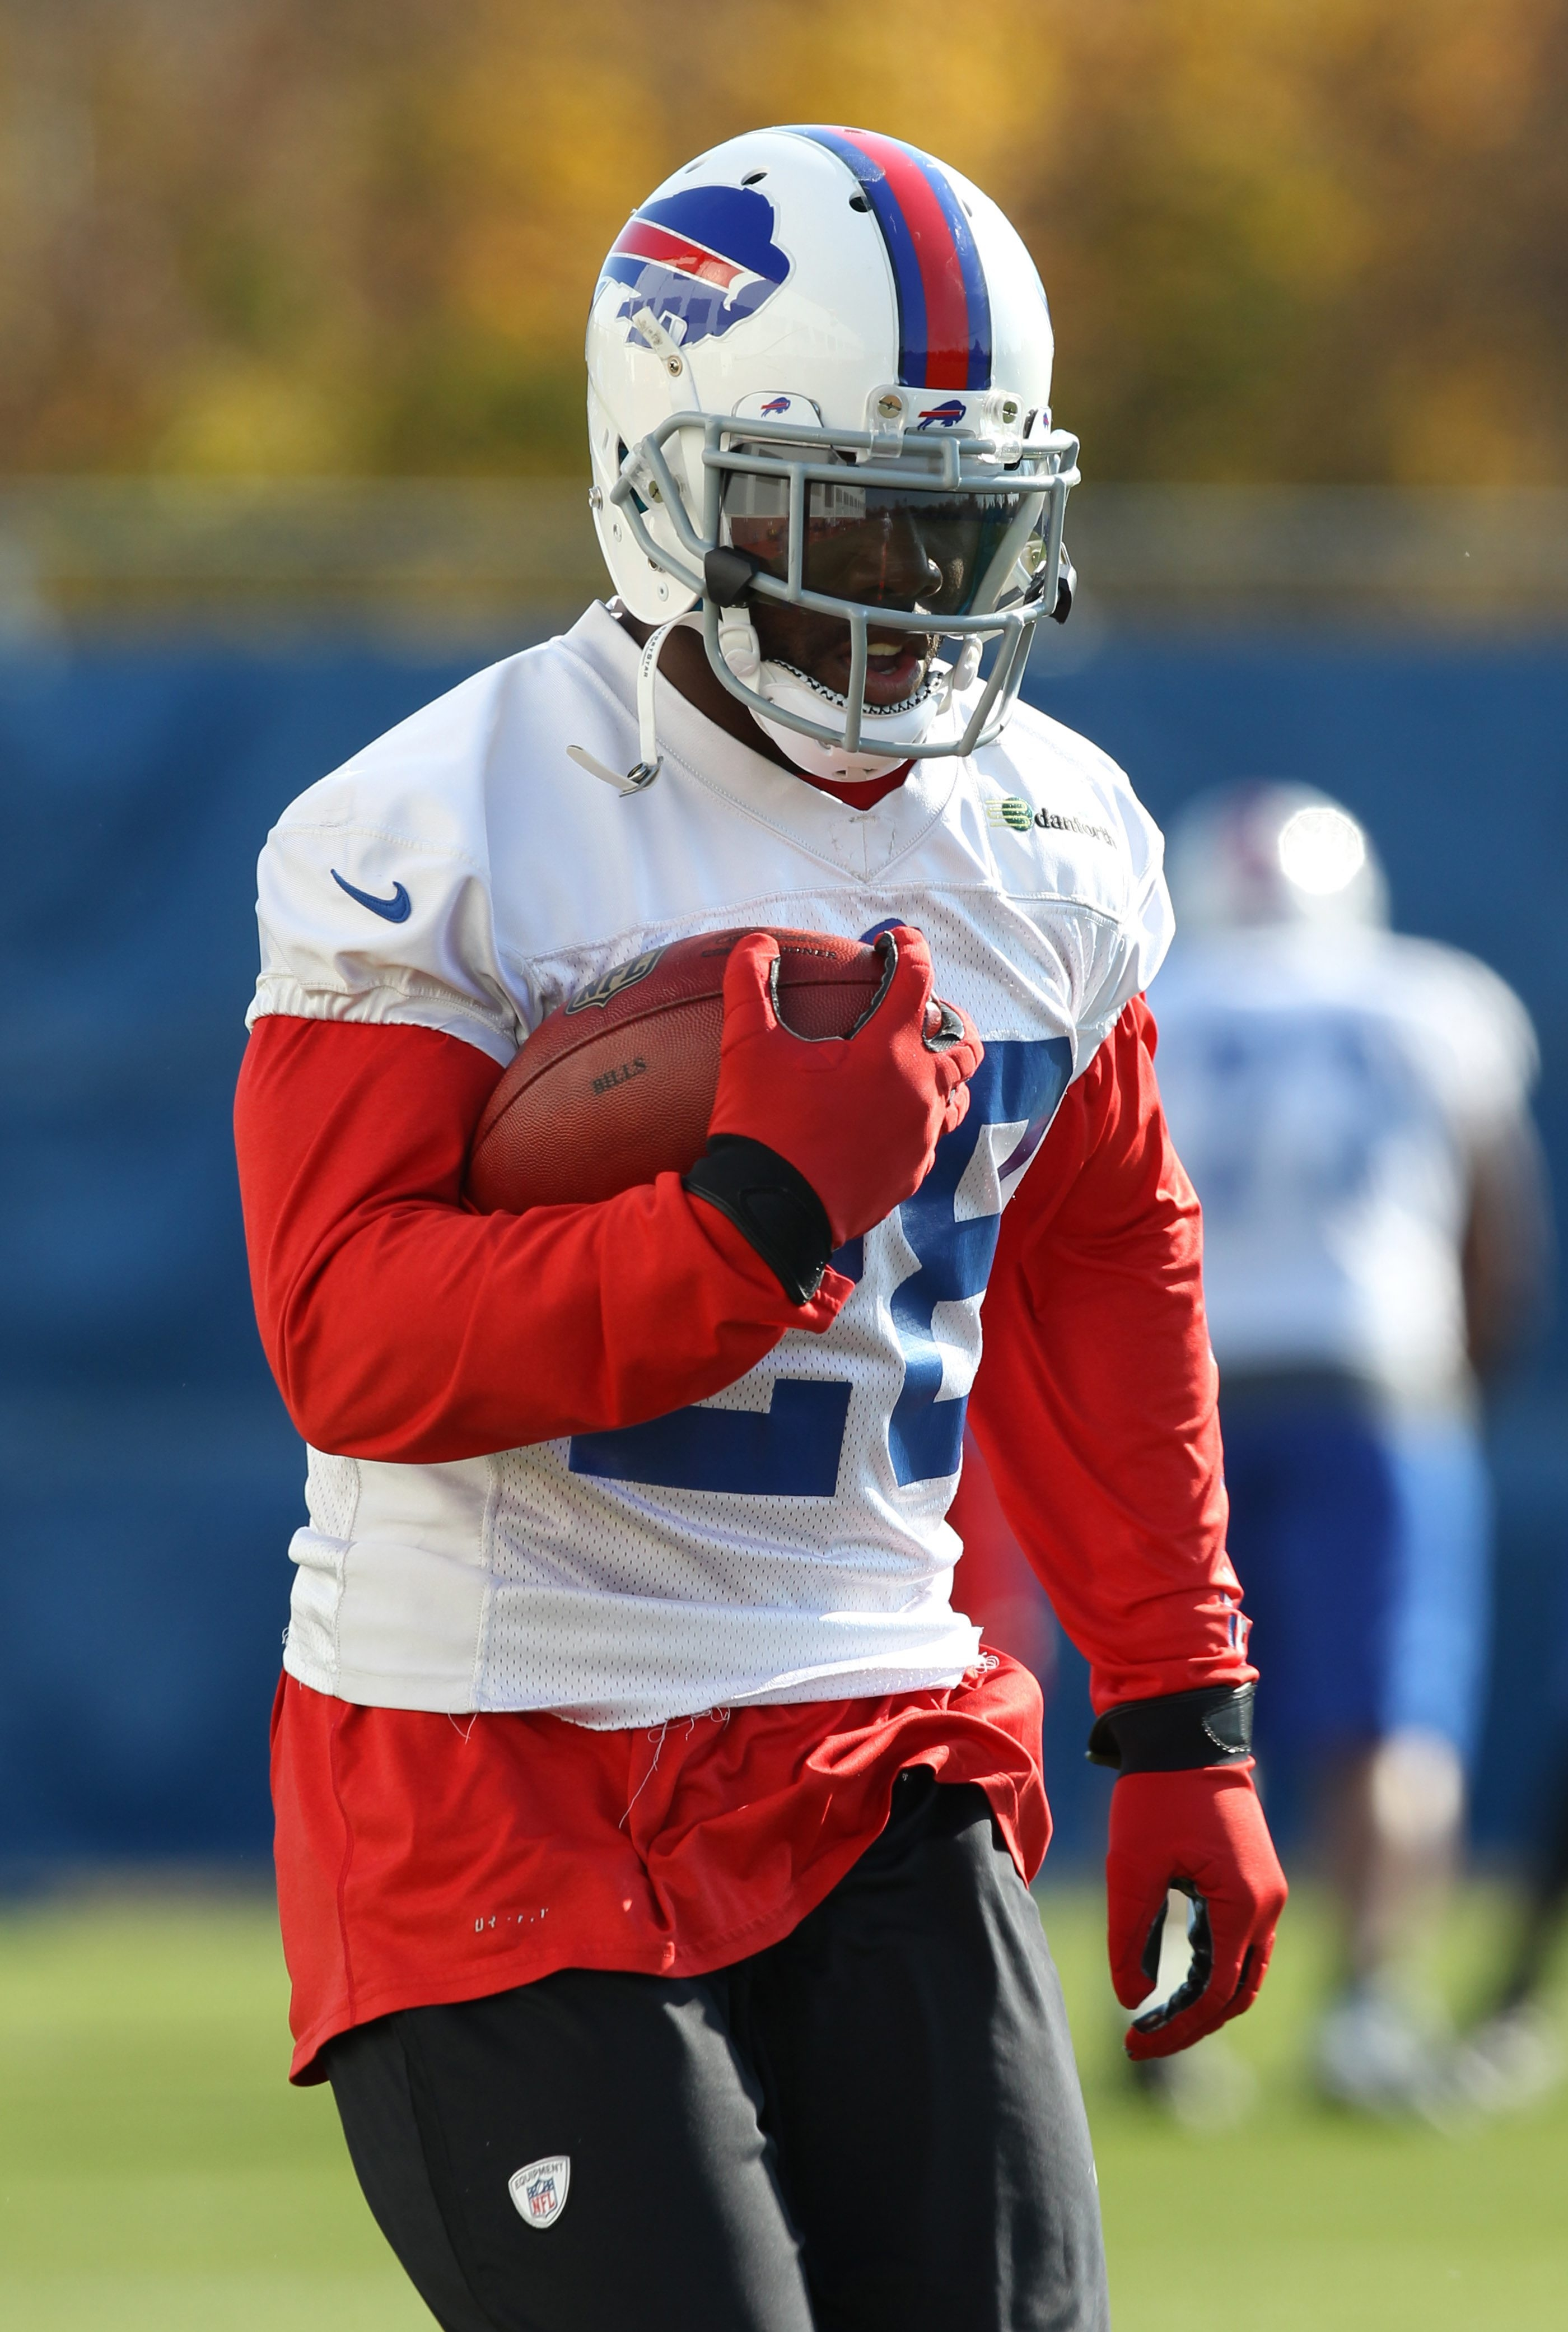 Running back C.J. Spiller is expected to return to the Bills' lineup on Sunday against the Chiefs.